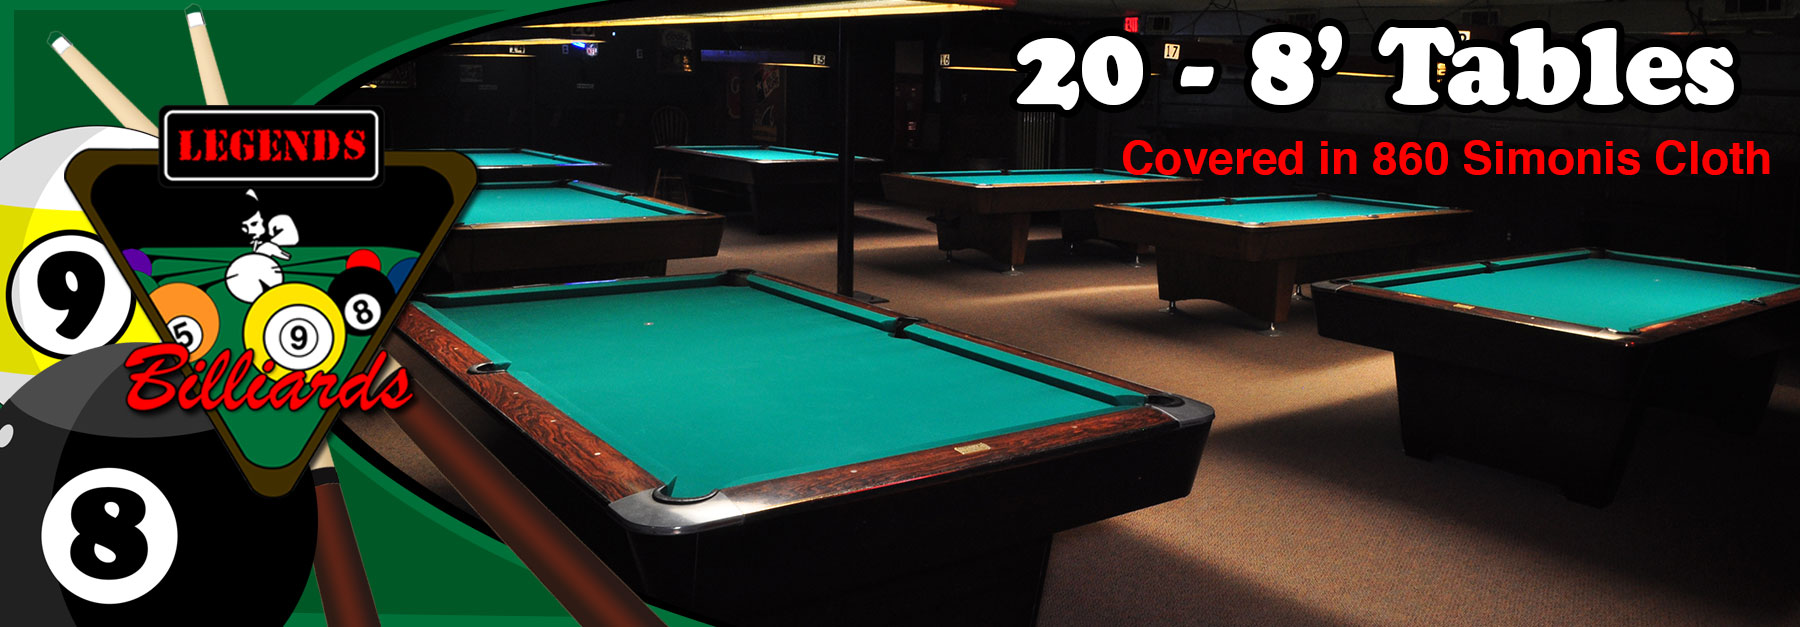 Are you looking for. Billiards clipart pool hall